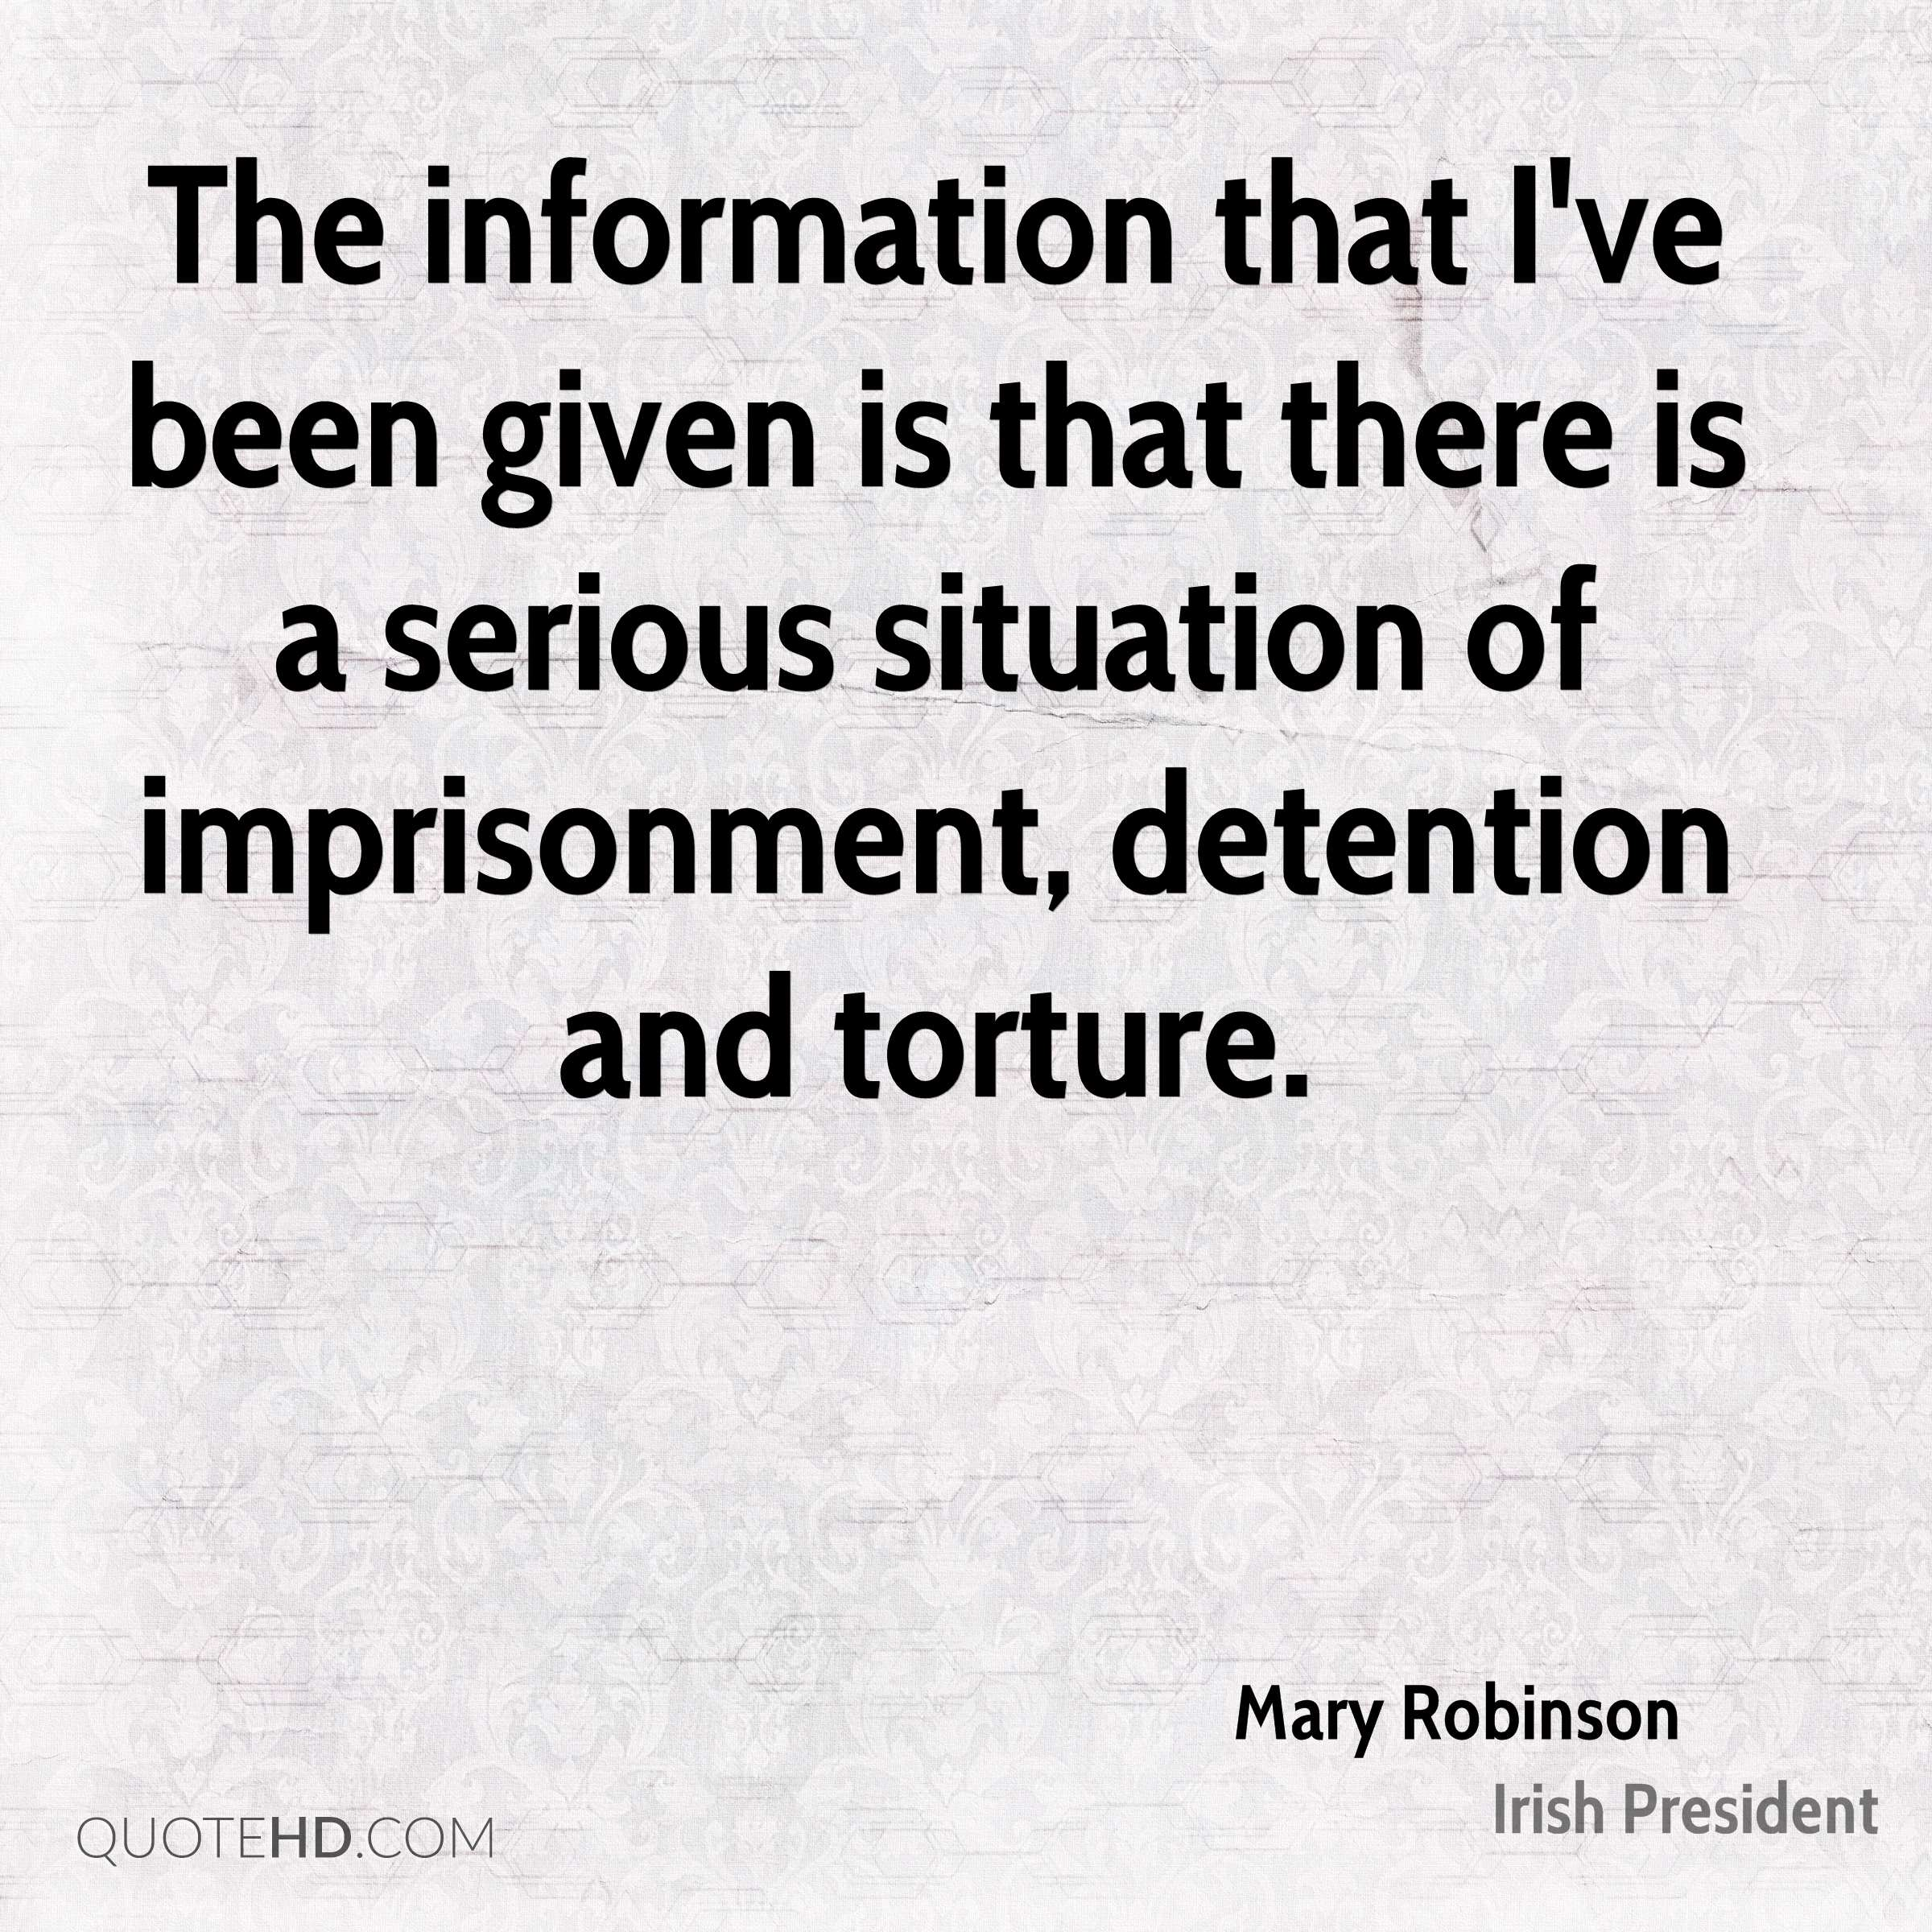 The information that I've been given is that there is a serious situation of imprisonment, detention and torture.